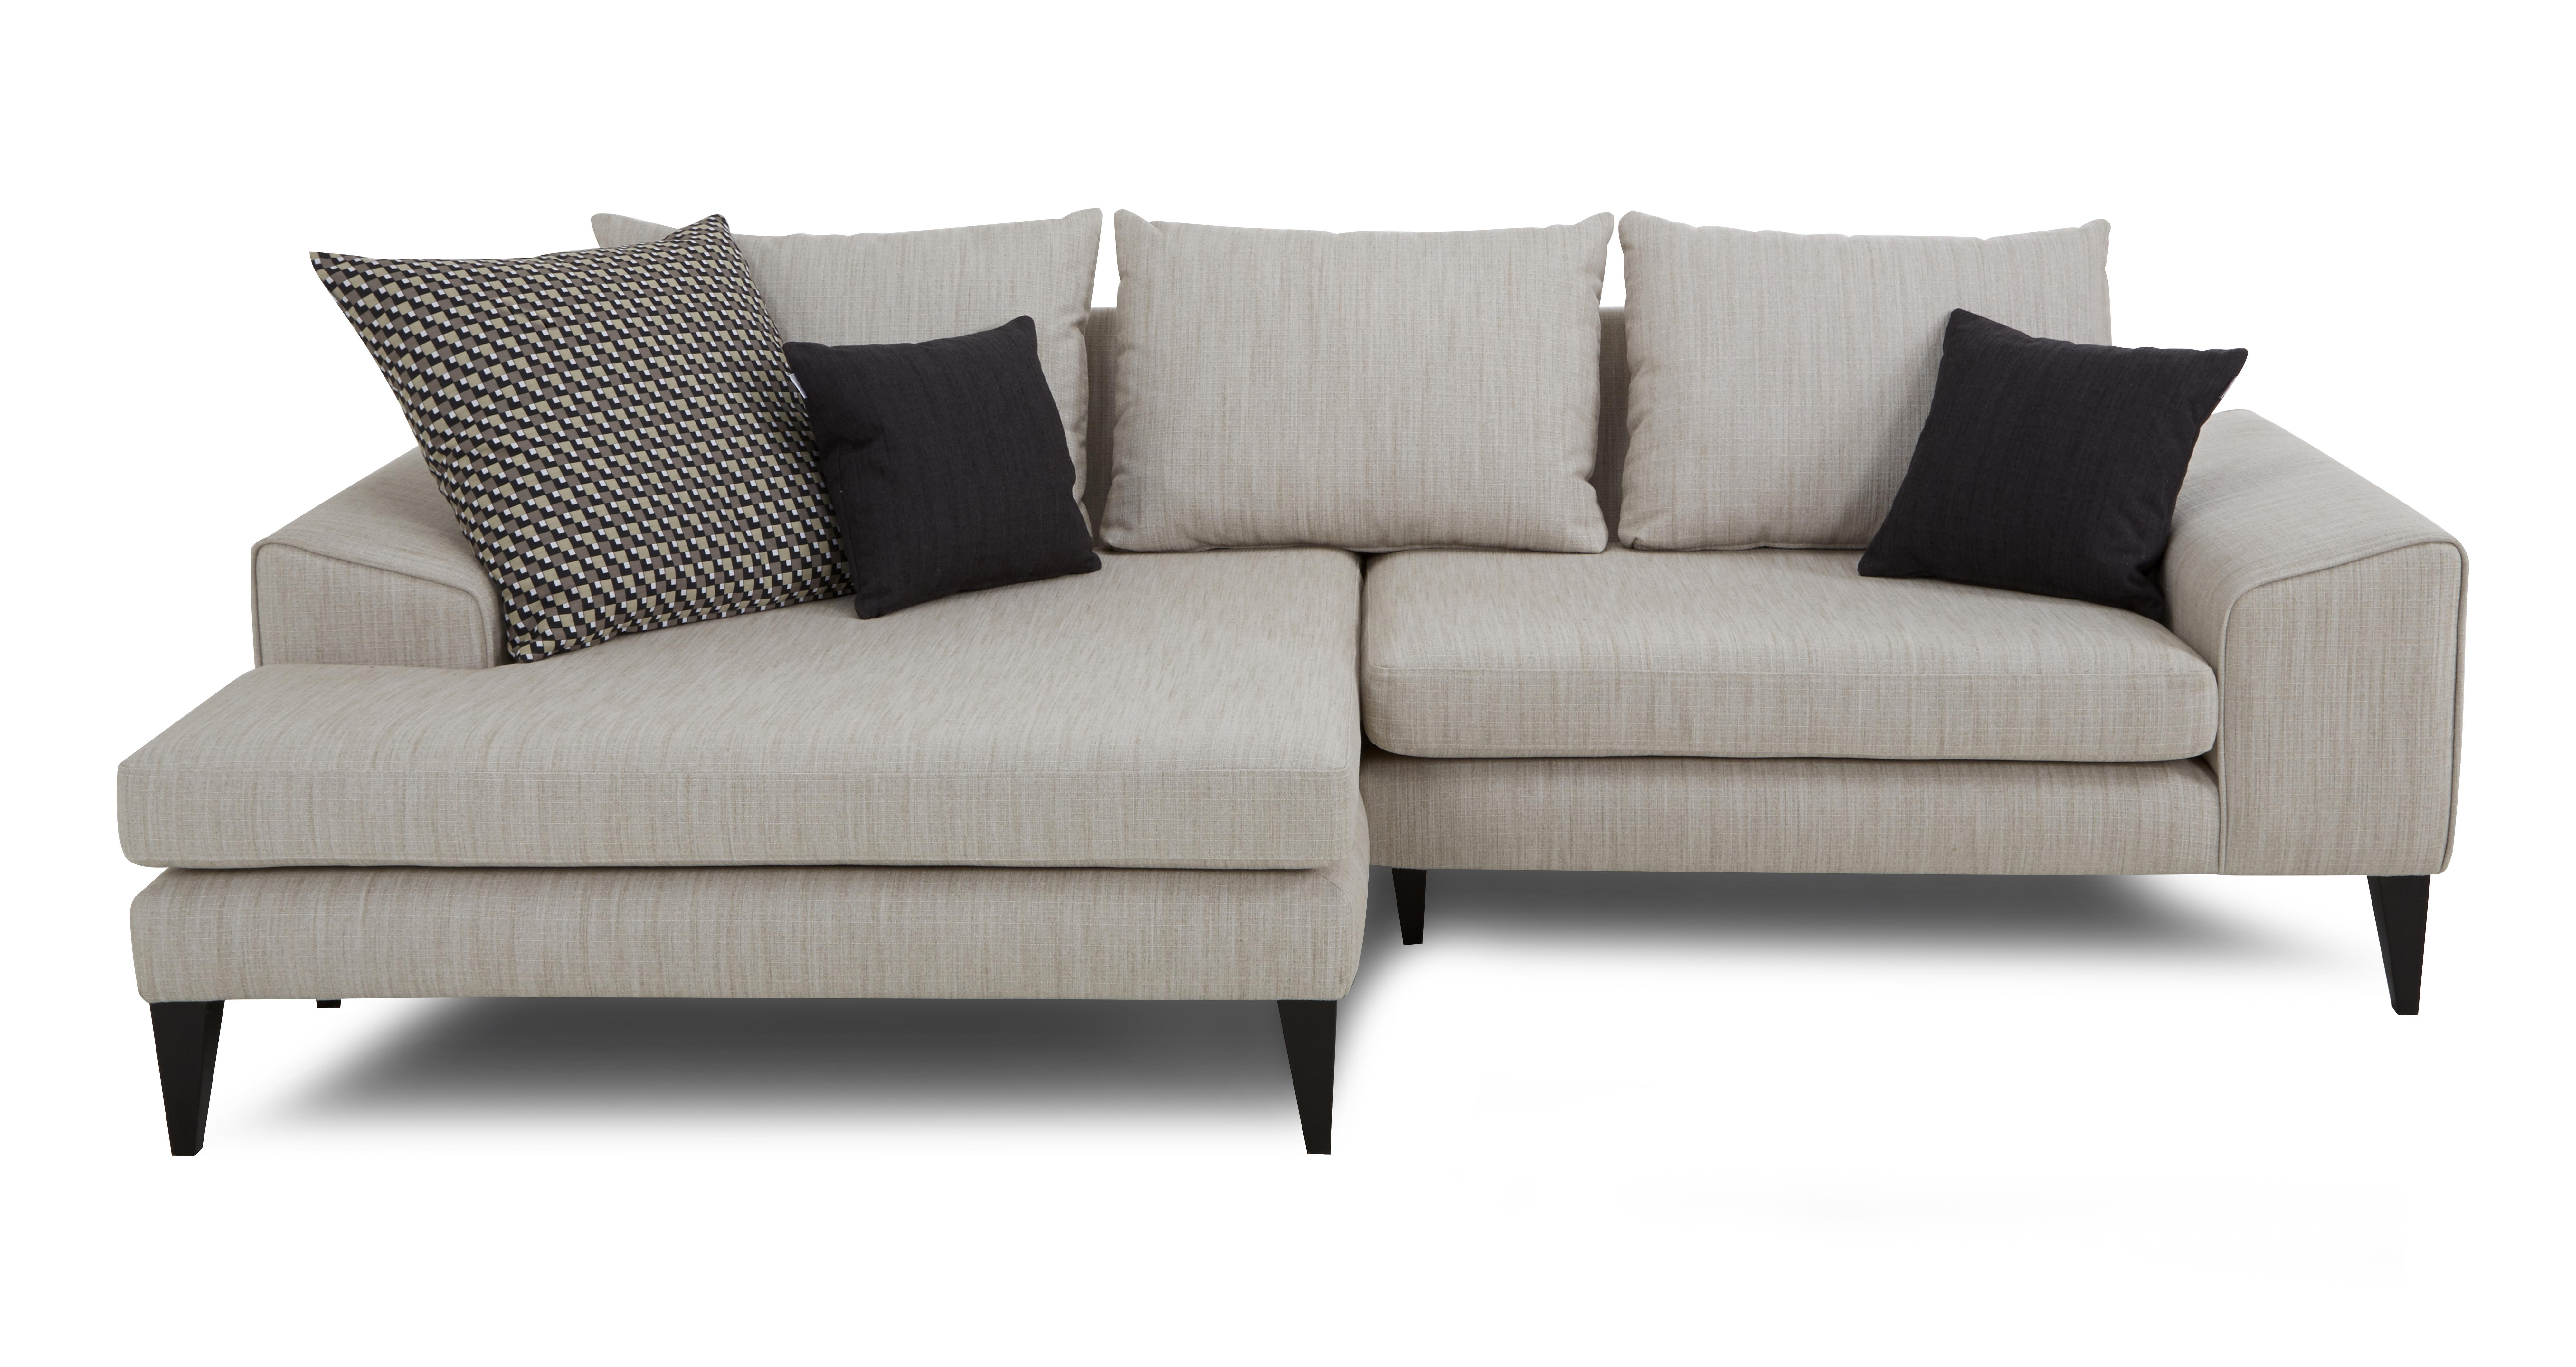 Current Sofa : Grey Chaise Sofa Darcy Graygreyunge Light Sectional With In Small Chaise Sofas (View 15 of 15)